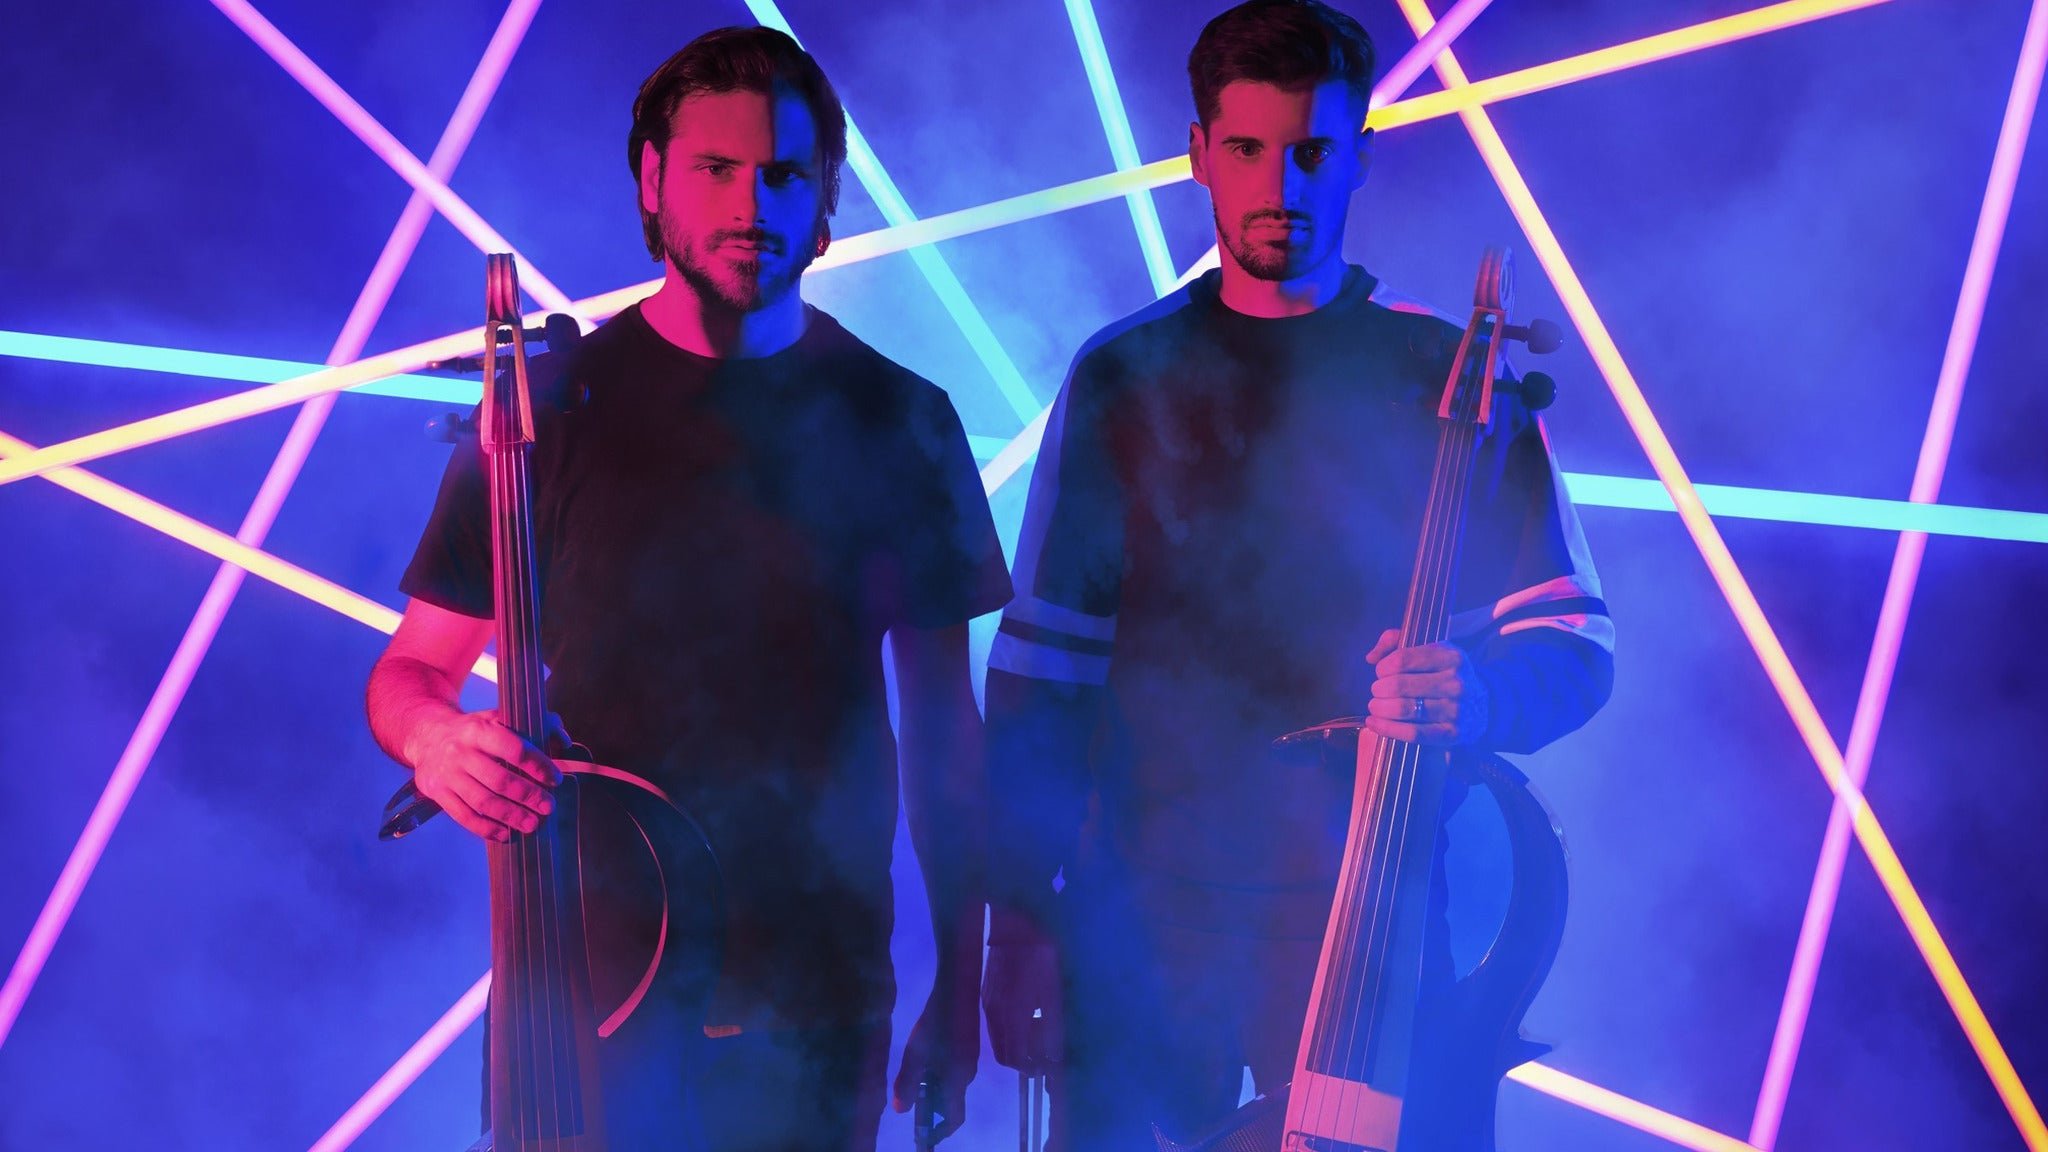 2Cellos at United Center